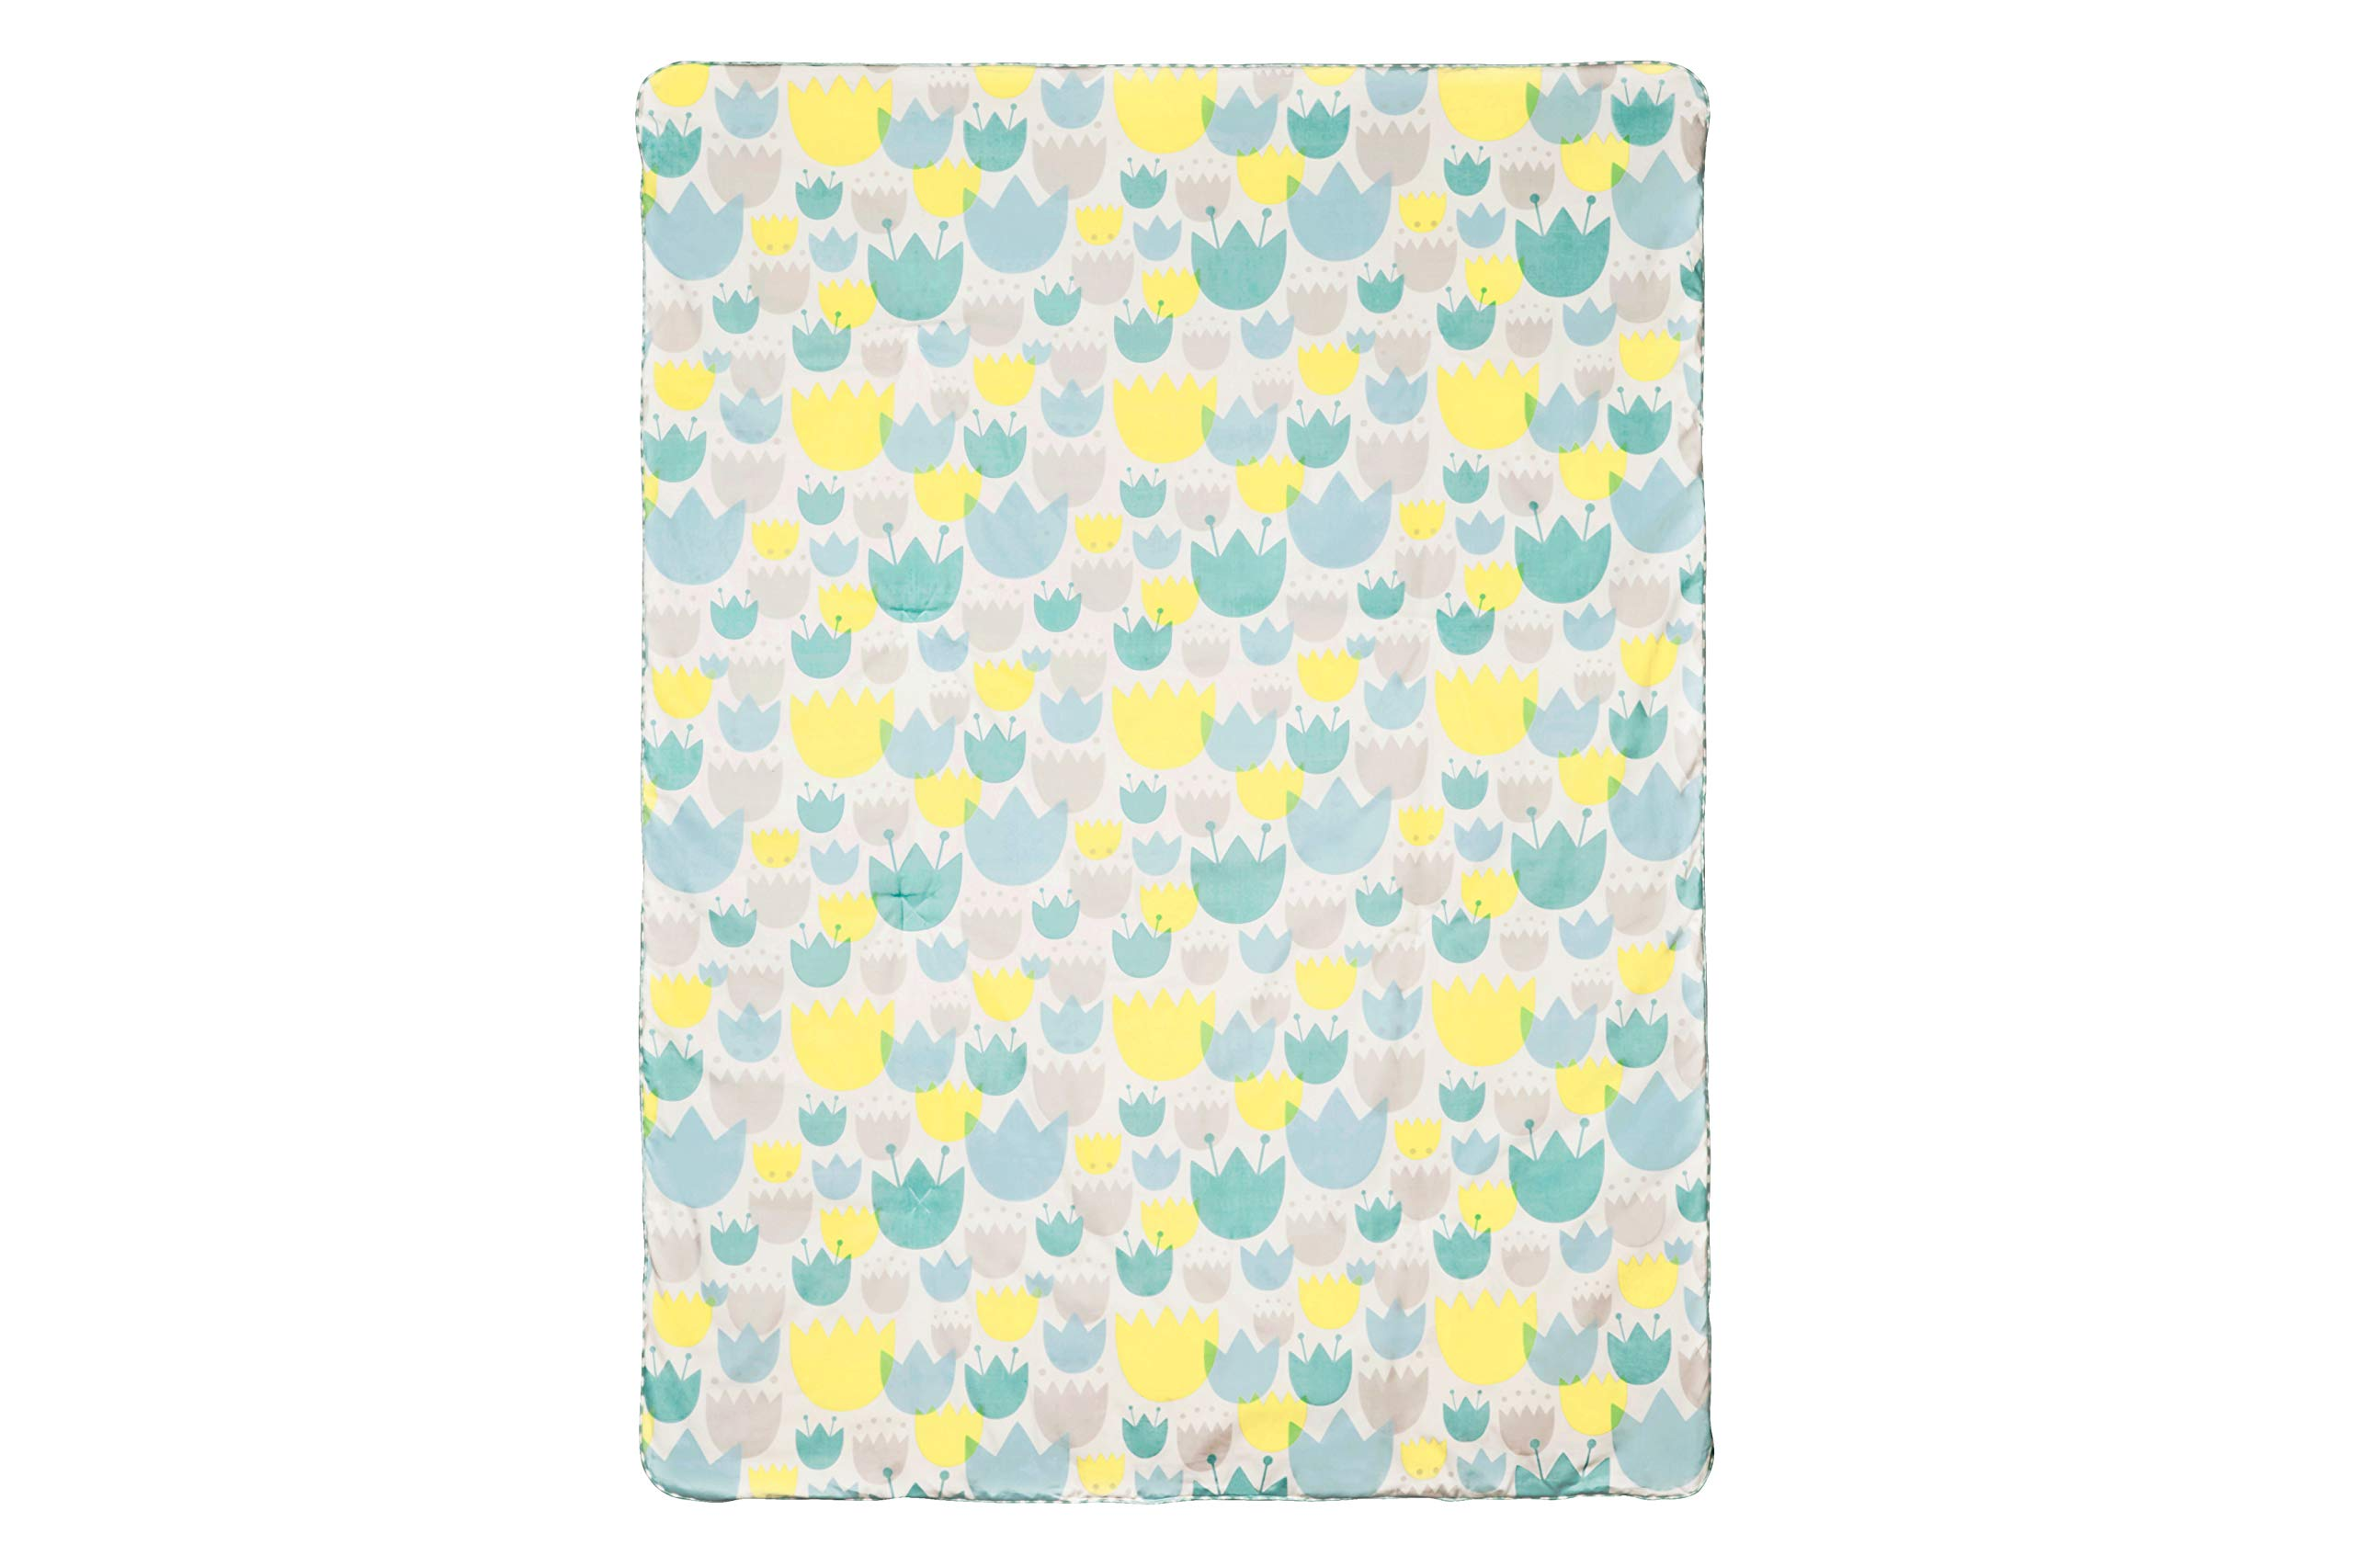 Babyletto Play and Toddler Blanket, Tulip Garden